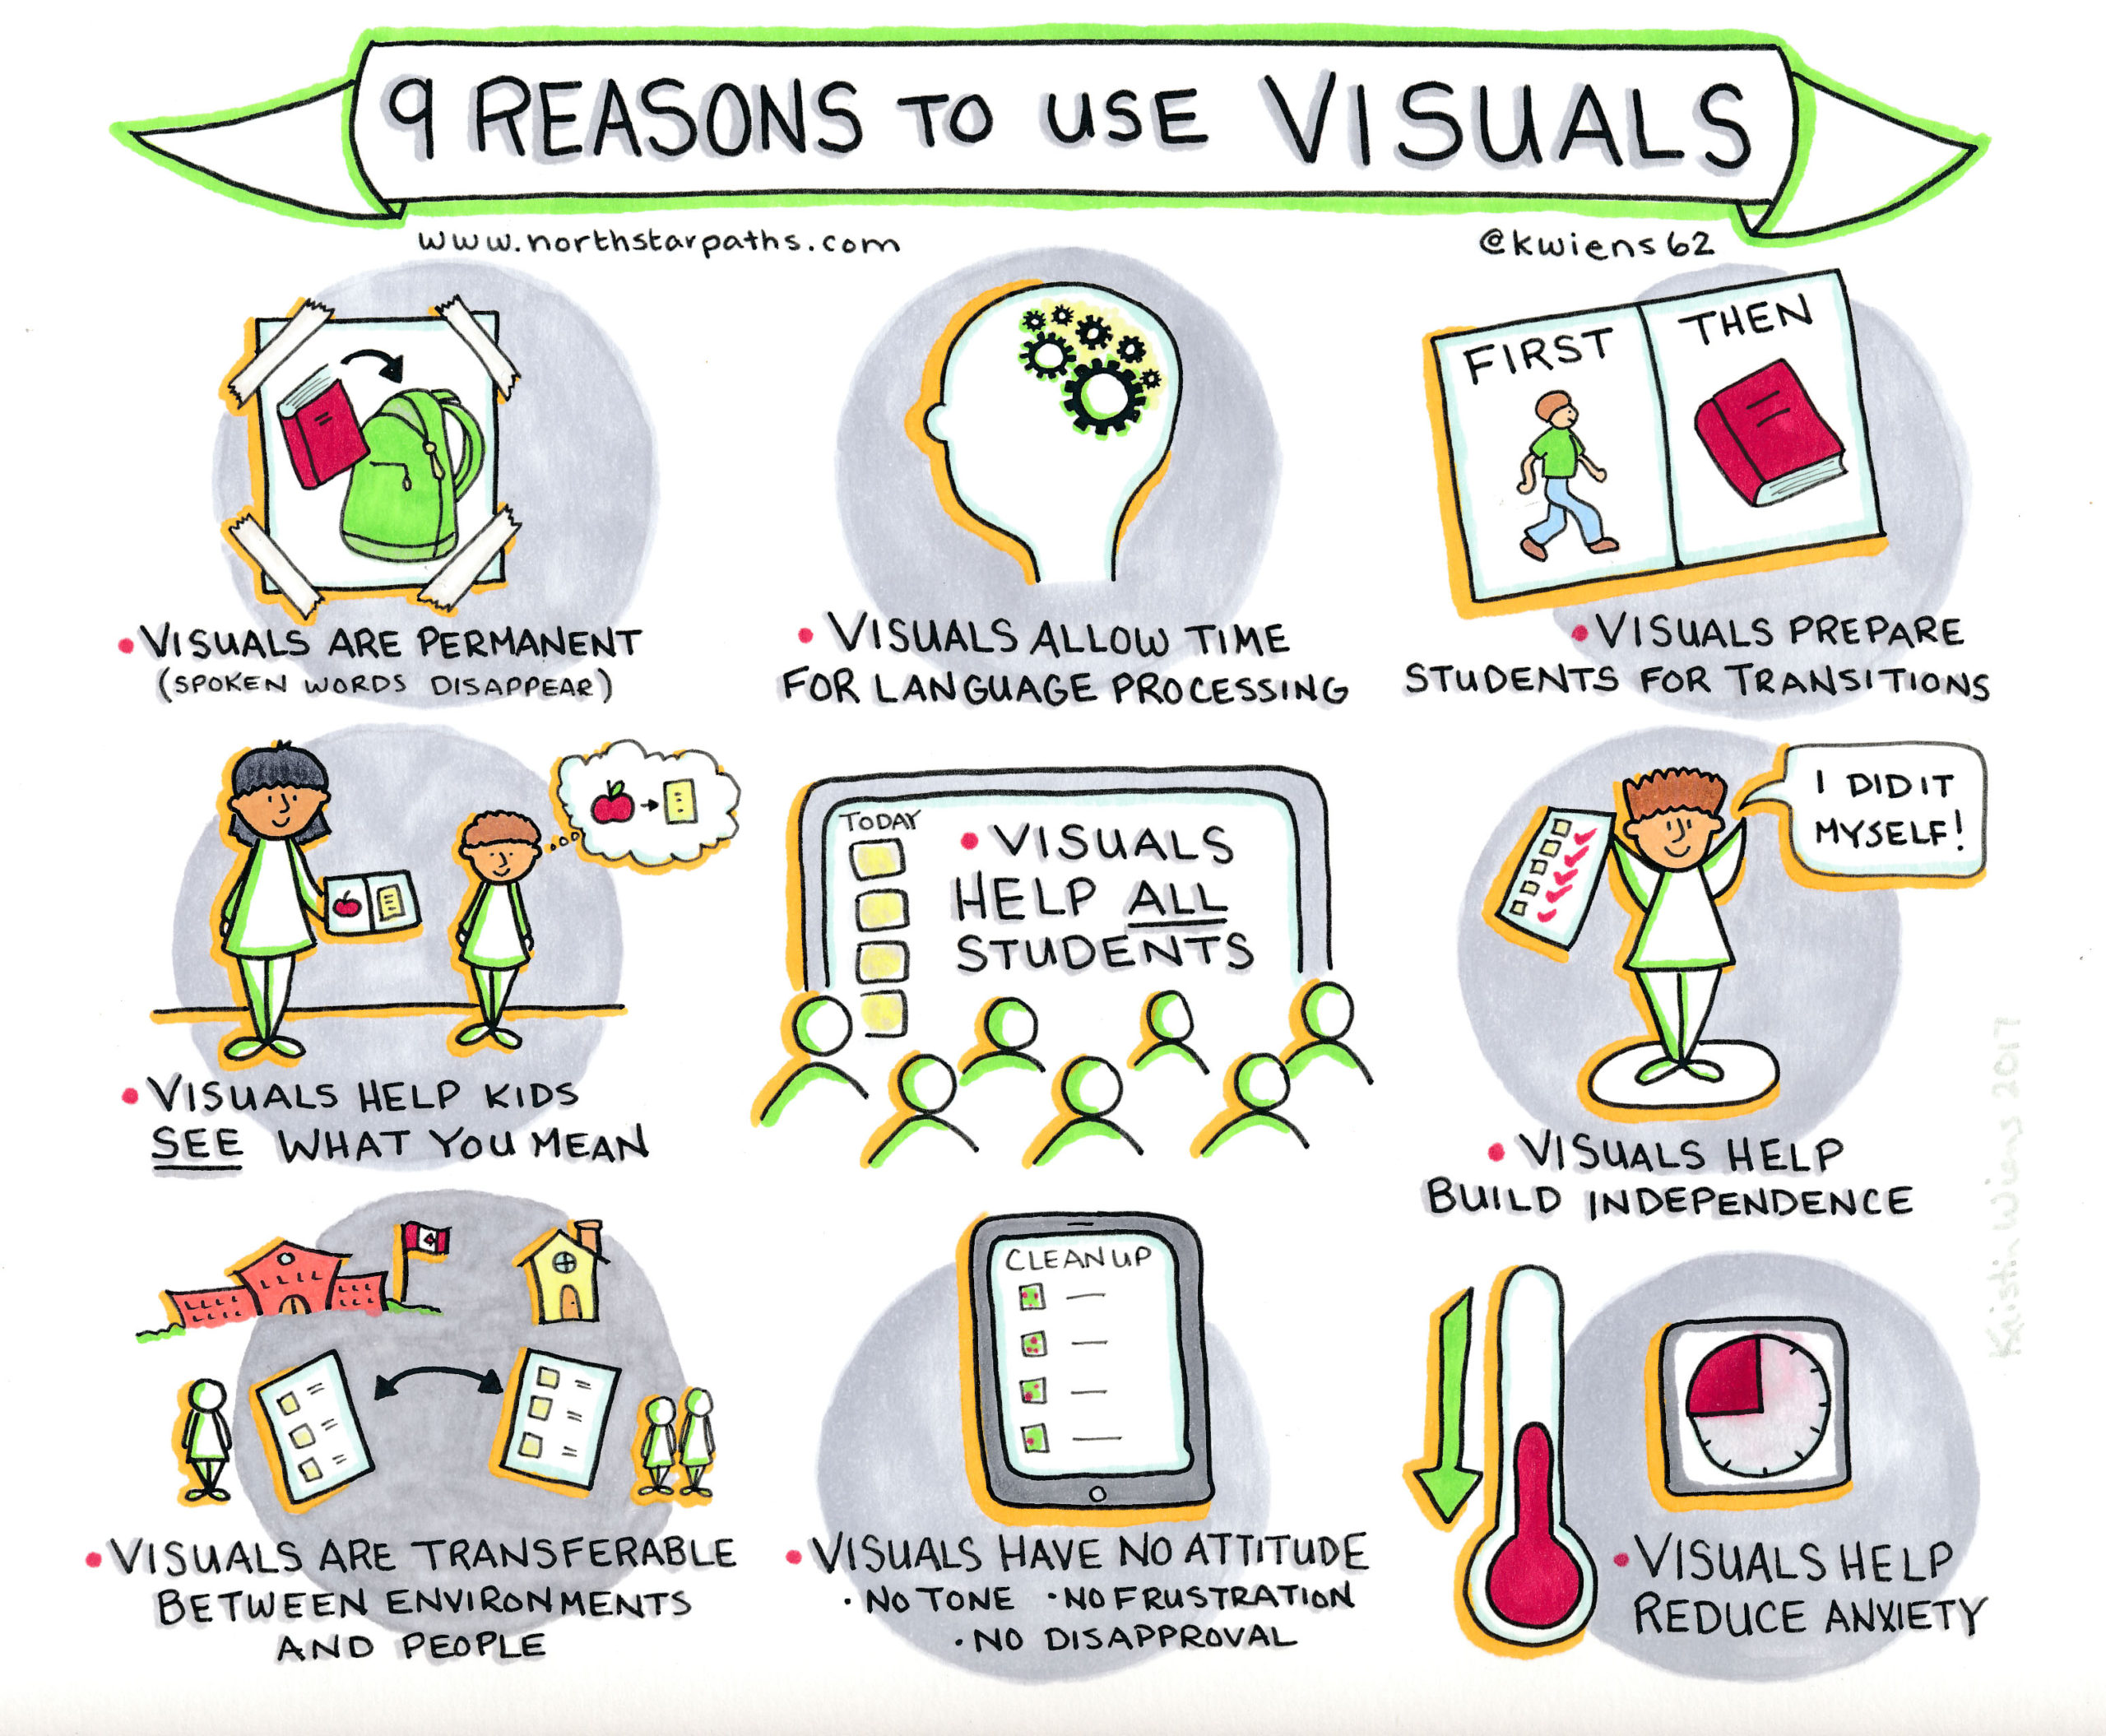 poster of 9 reasons to use visuals